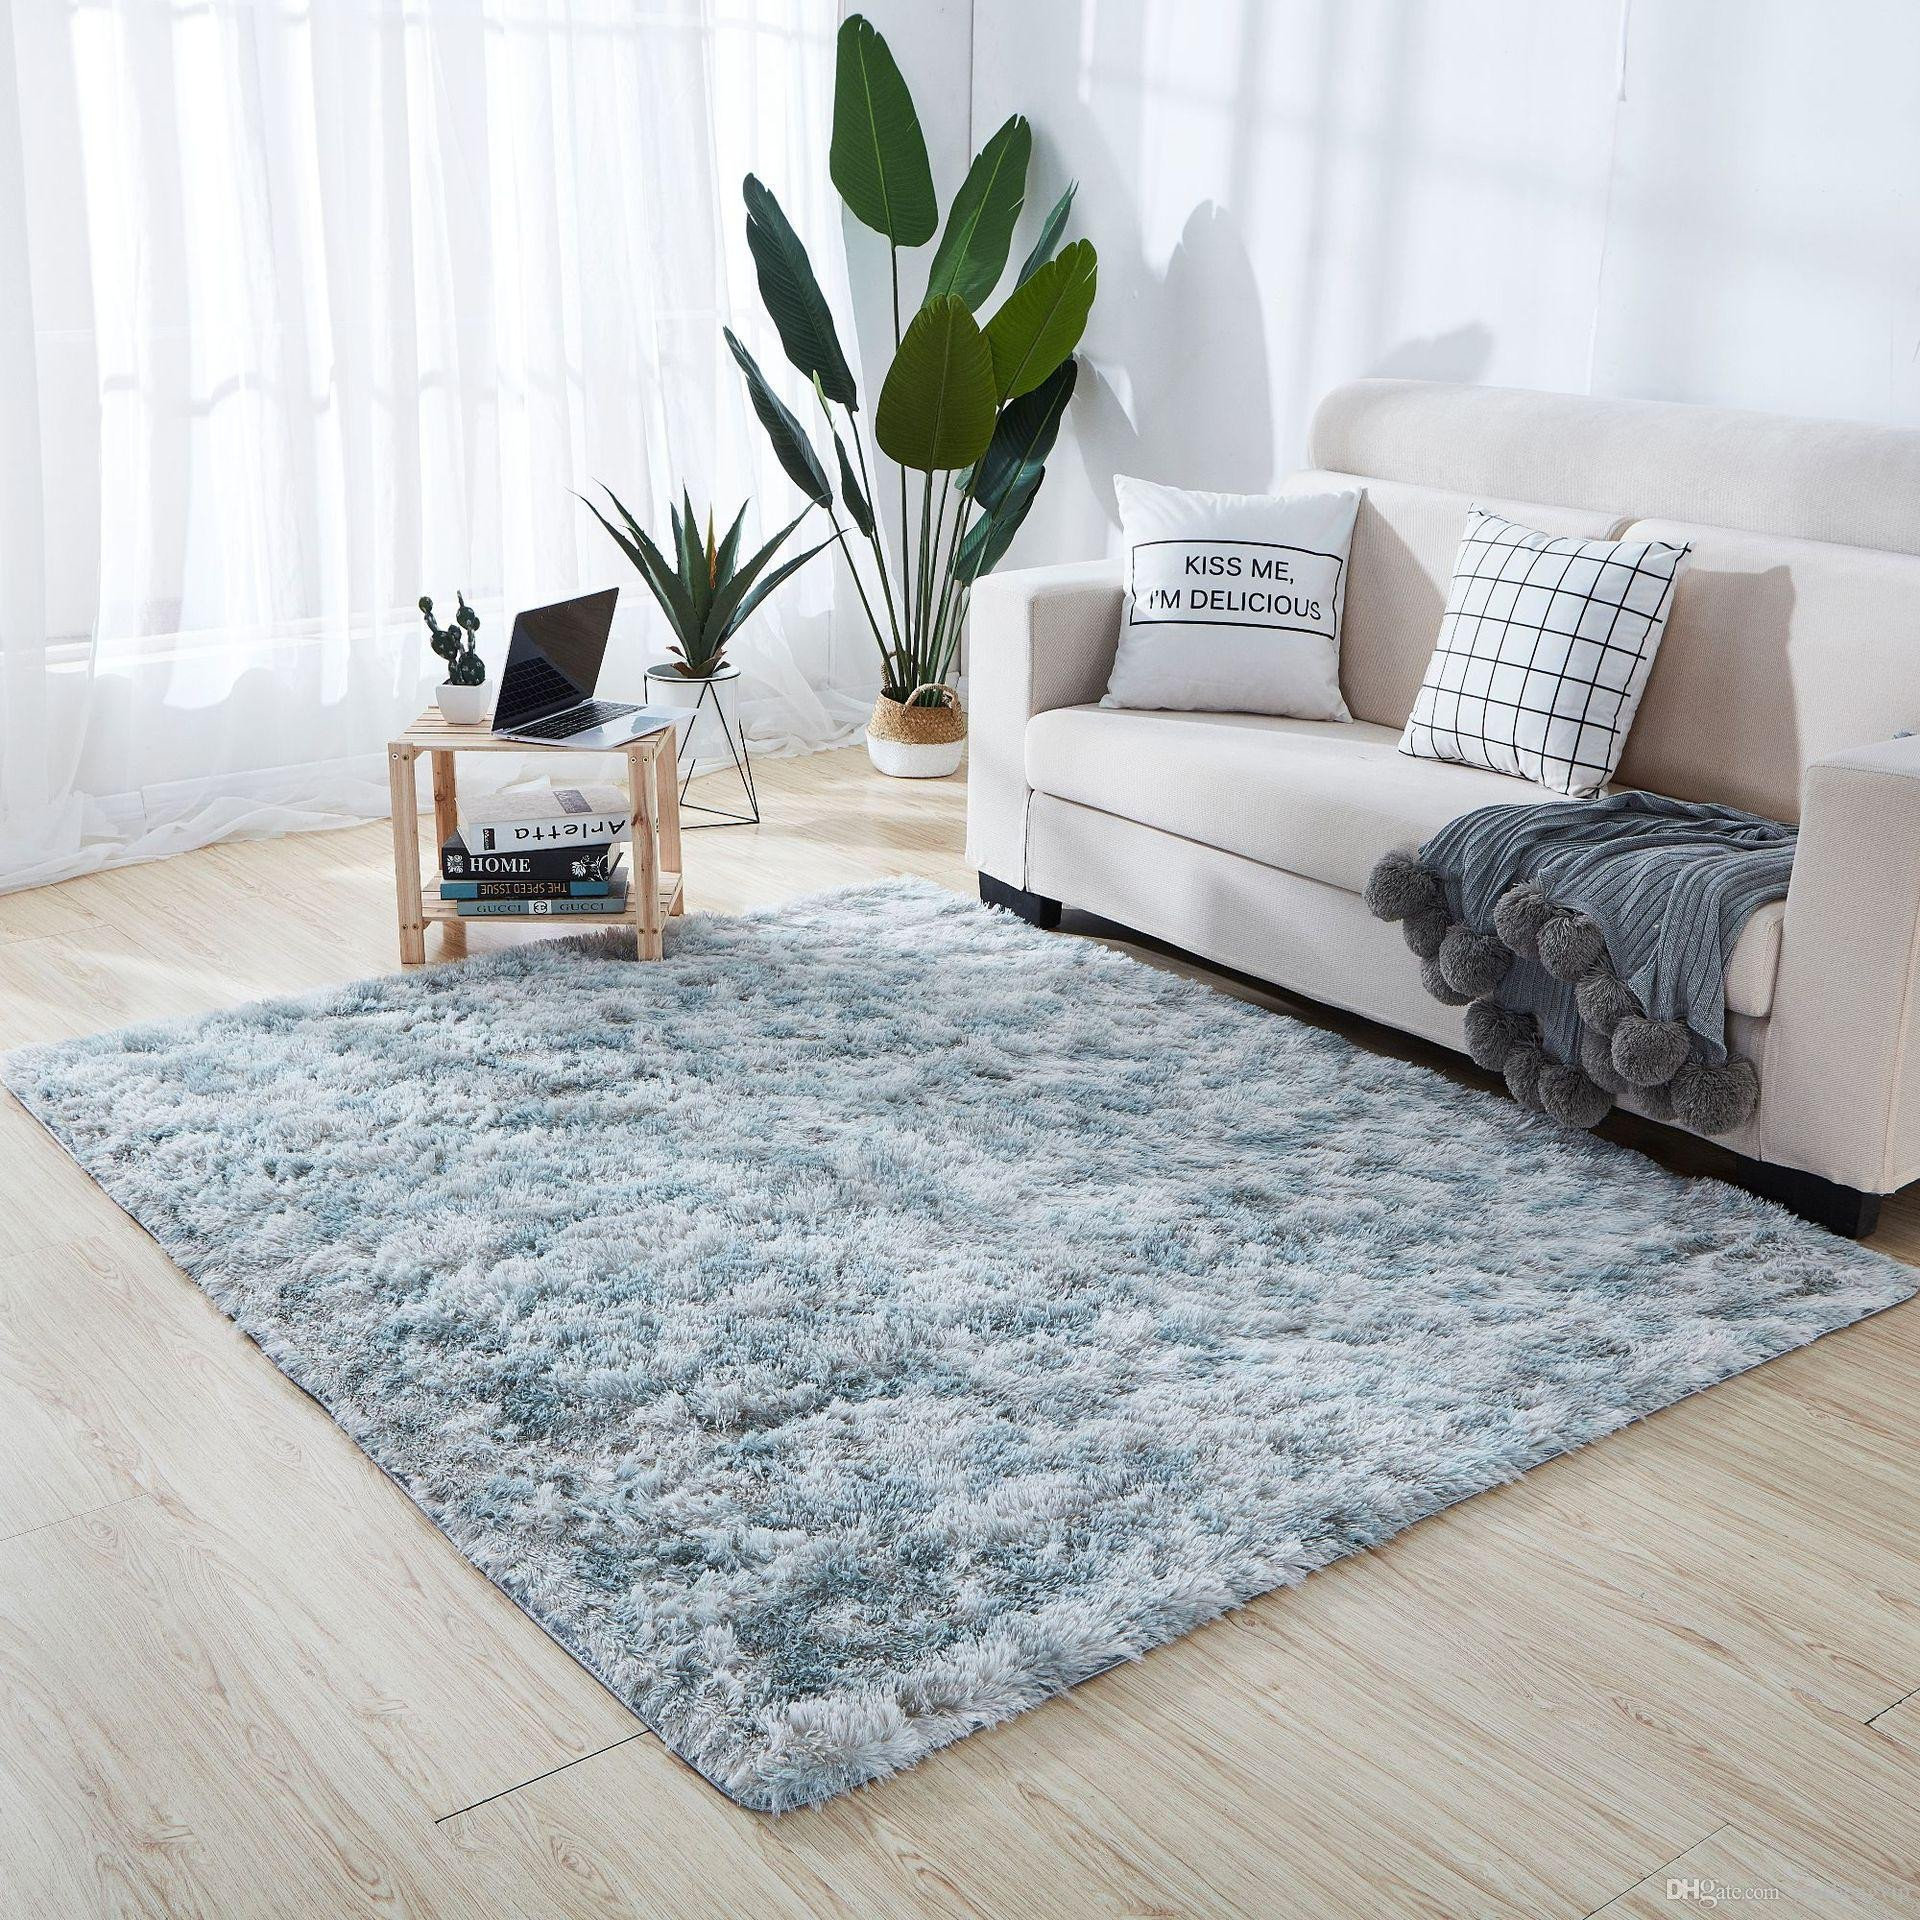 Soft Rugs for Bedroom Beautiful Fashion Extra soft Carpet Anti Skid Shaggy Warm area Rug for Indoor Living Room Bedroom Carpet Binding Beaulieu Carpet From Junshengvip $10 06